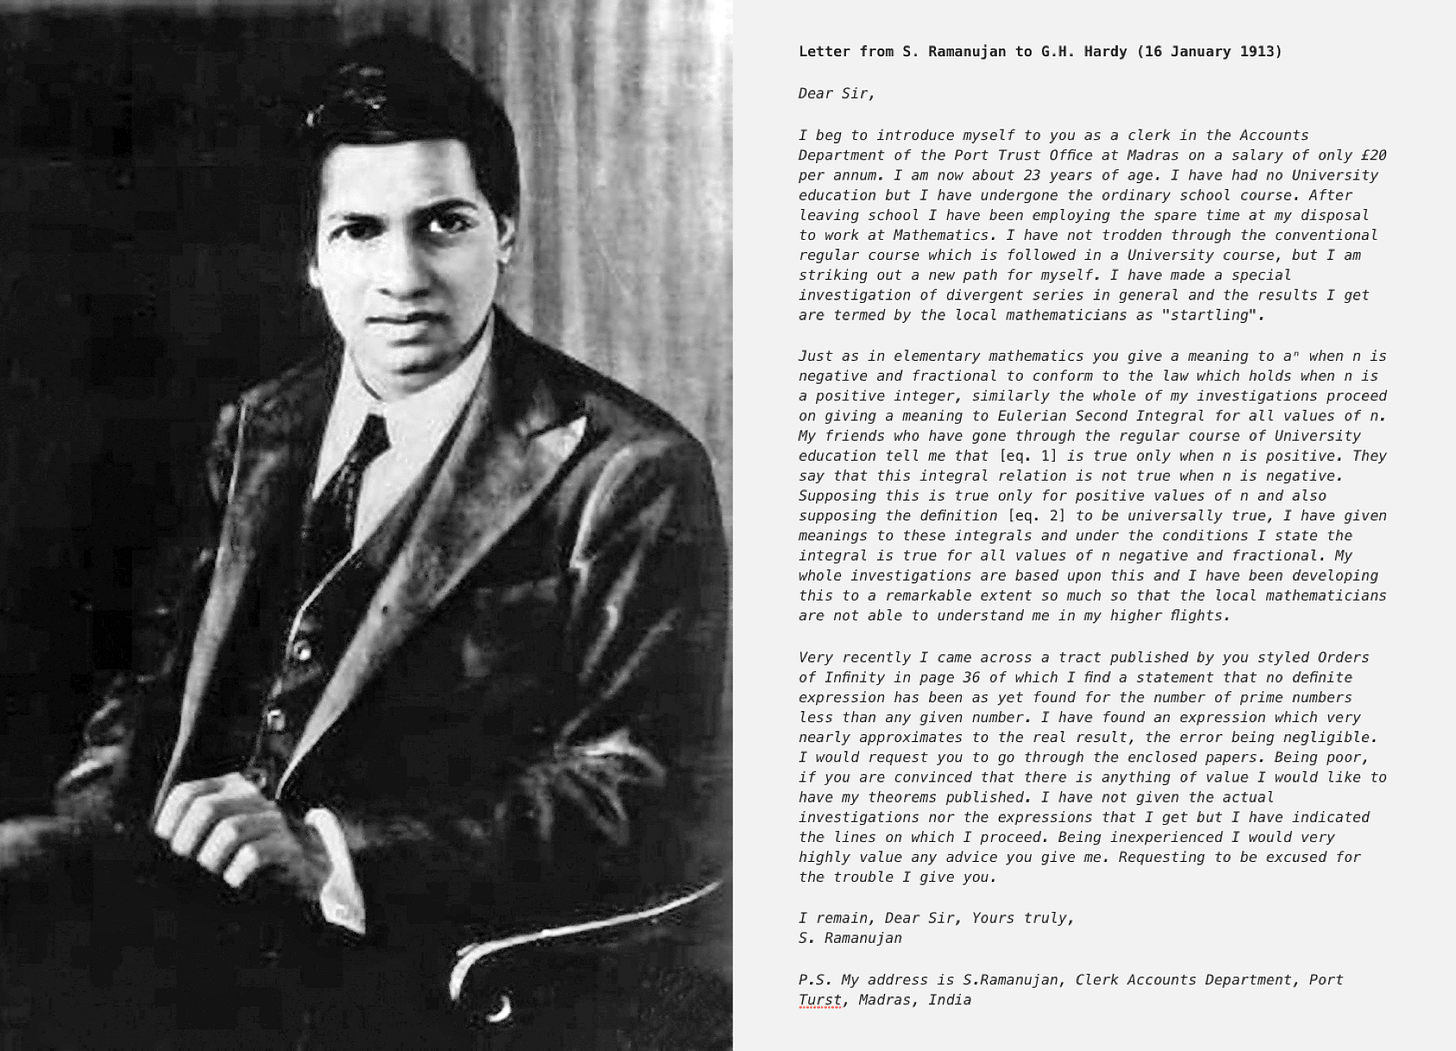 Ramanujan's First Letter to G.H. Hardy